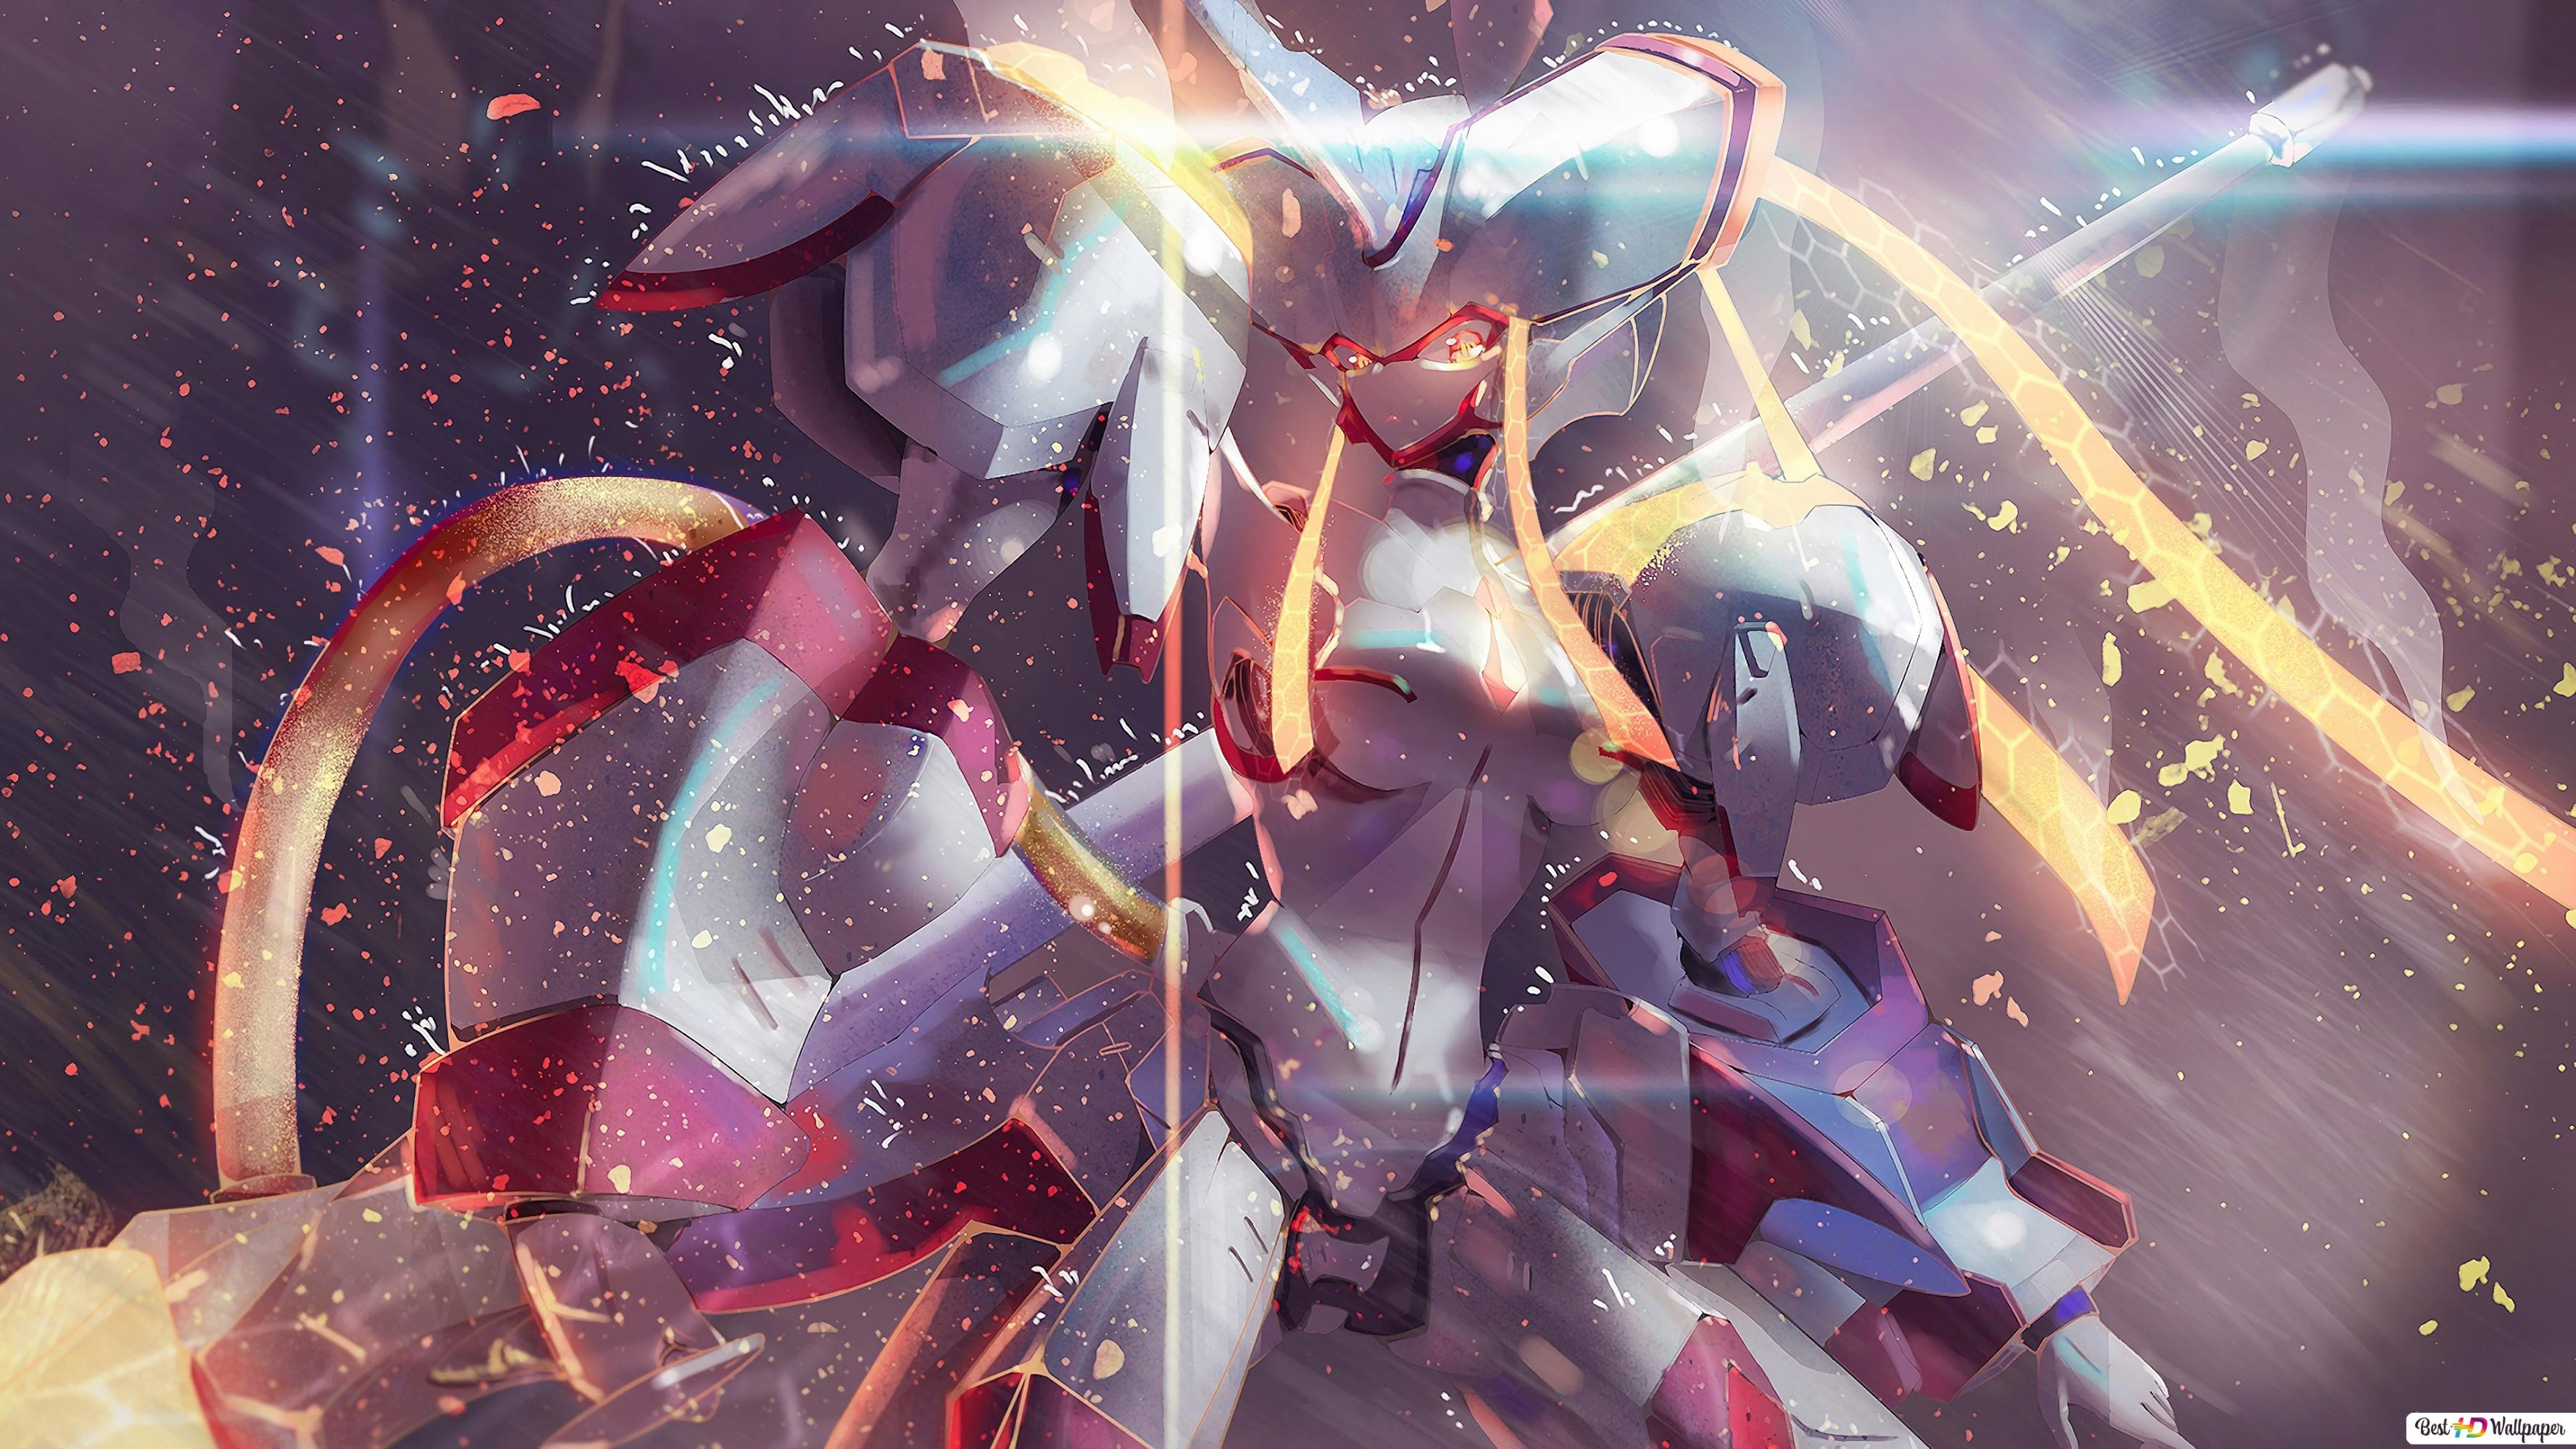 Darling In The Franxx Strelizia Mecha Robot Hd Wallpaper Download